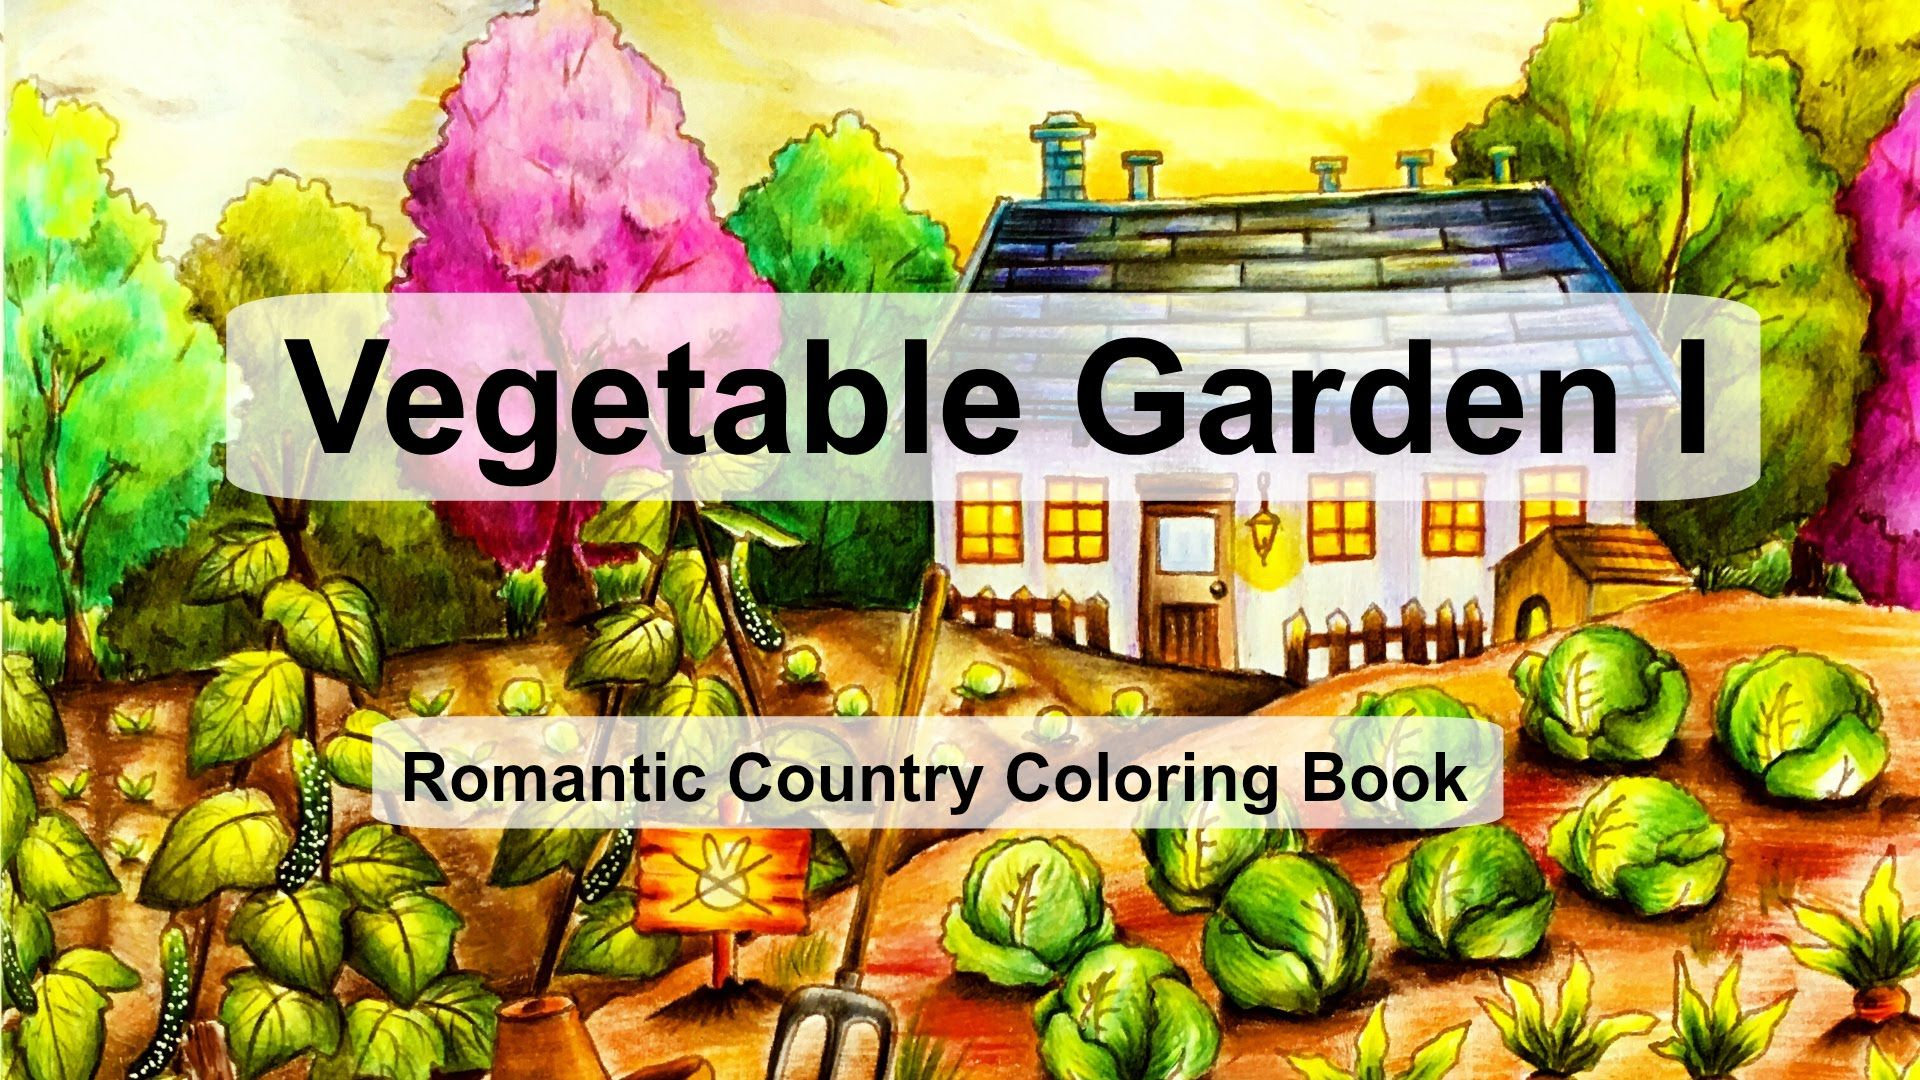 Watercolor pencils for adult coloring book - Vegetable Garden I Adult Coloring Book Romantic Country By Eriy Watercolor Pencilsadult